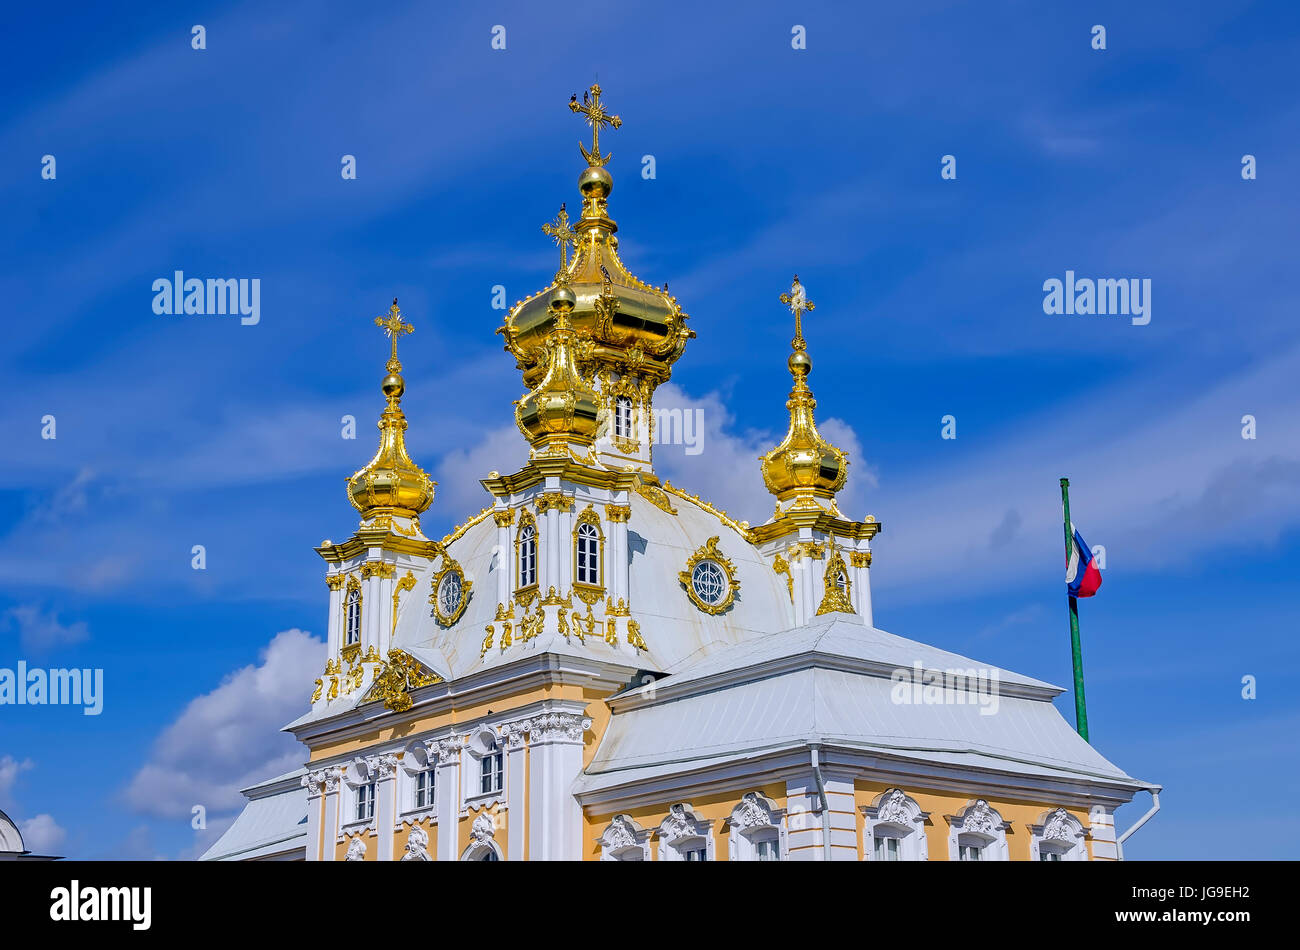 Peterhof Palace Gilded  domes of the church at the Grand Palace located near Saint Petersburg, Russia - Stock Image